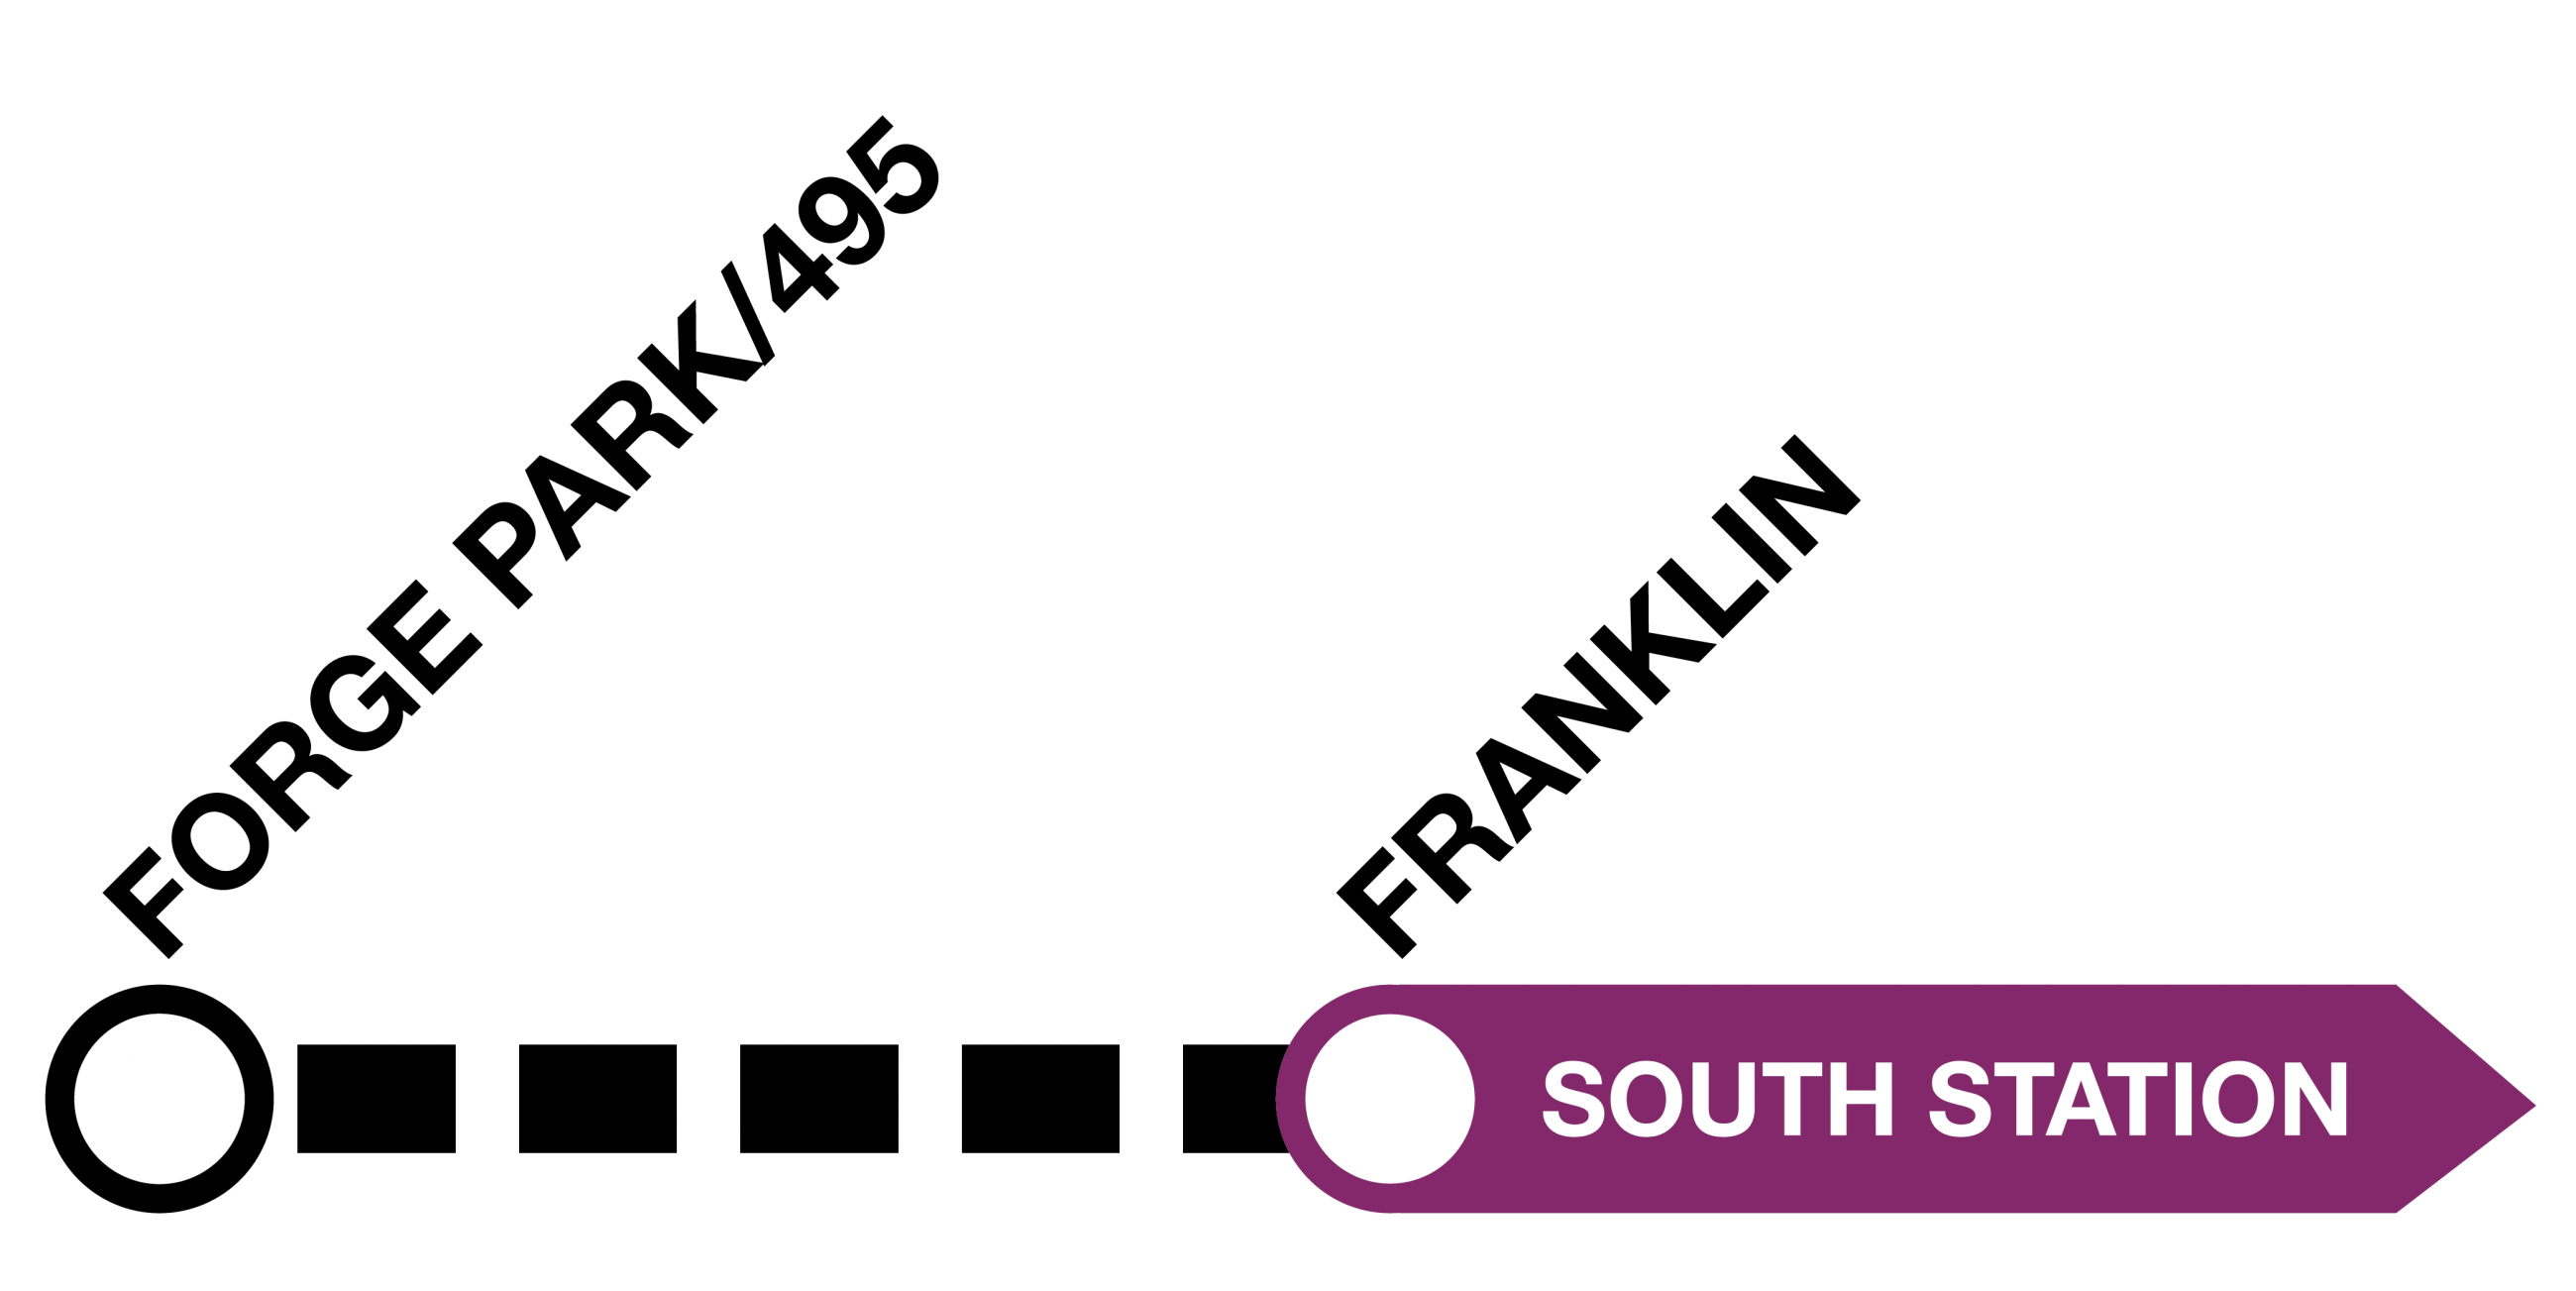 Graphic showing bus shuttles between Forge Park/495 and Franklin, with regular Commuter Rail service for the rest of the line.